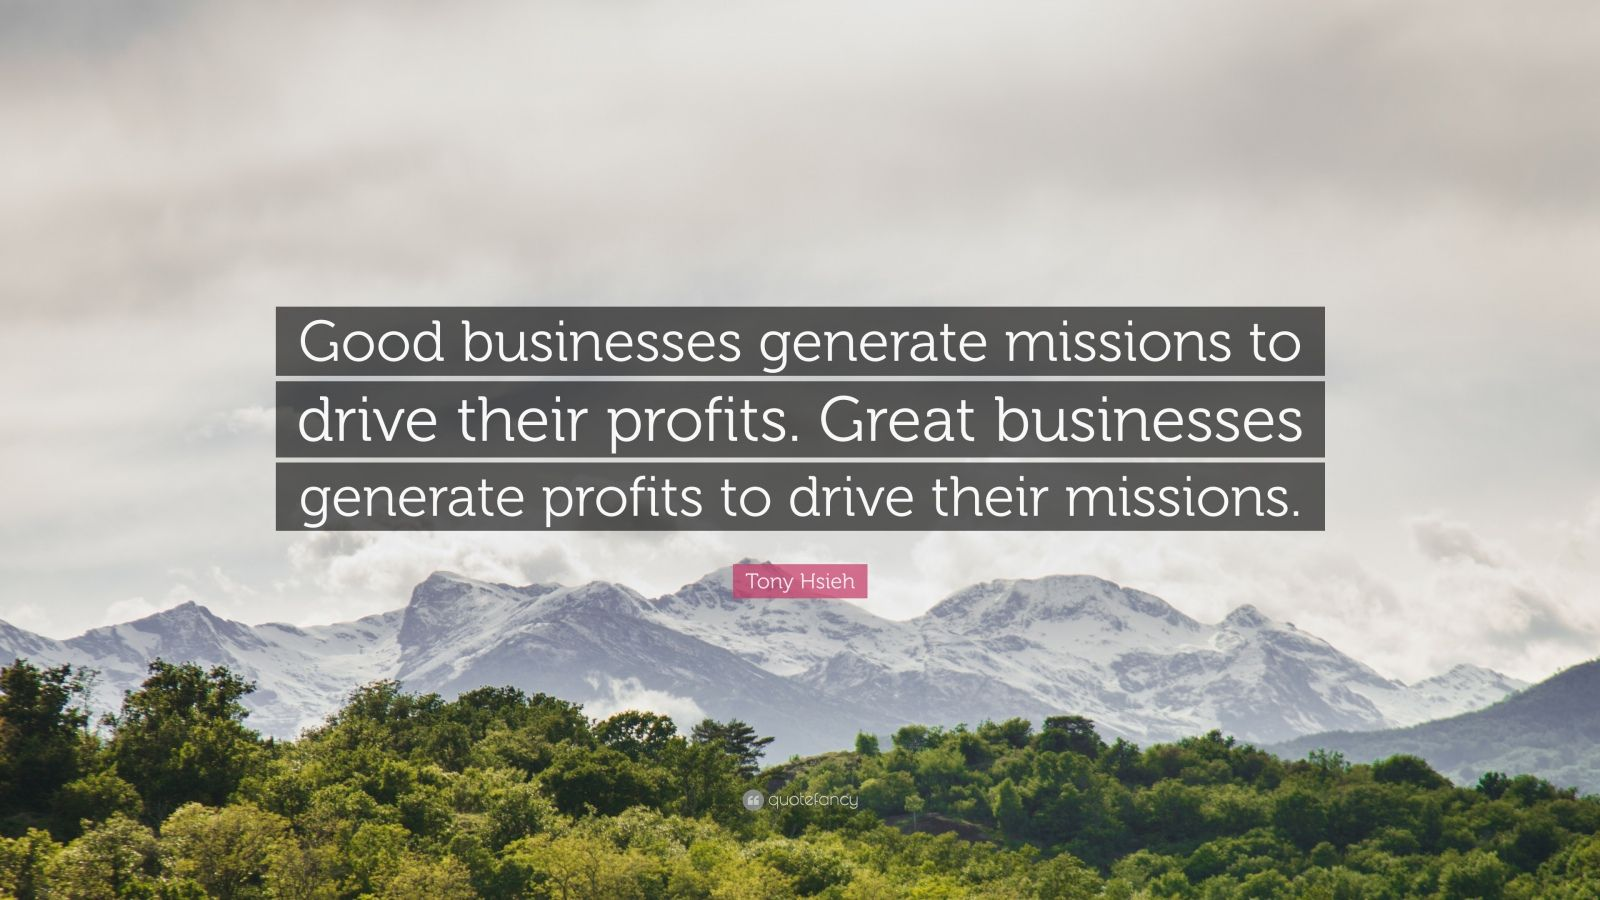 """Tony Hsieh Quote: """"Good businesses generate missions to drive their profits. Great businesses generate profits to drive their missions."""""""